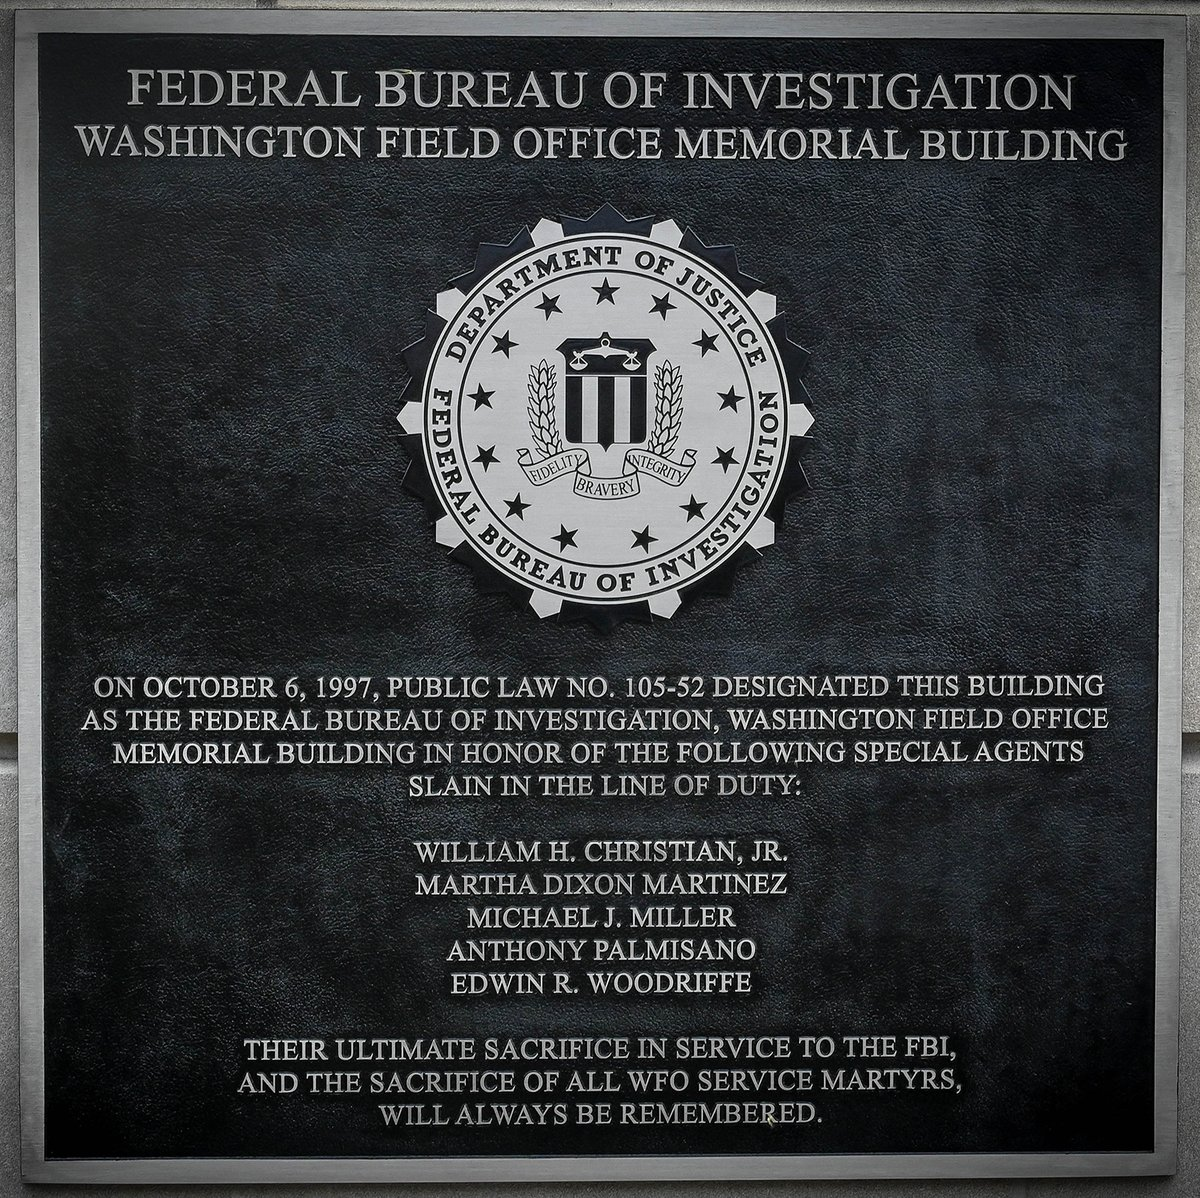 Today, #FBIWFO unveiled a plaque dedicating our building in honor of WFO service martyrs William H. Christian, Jr., Martha Dixon Martinez, Michael J. Miller, Anthony Palmisano, and Edwin R. Woodriffe. #FBI Director Wray spoke at the ceremony in remembrance of the fallen.